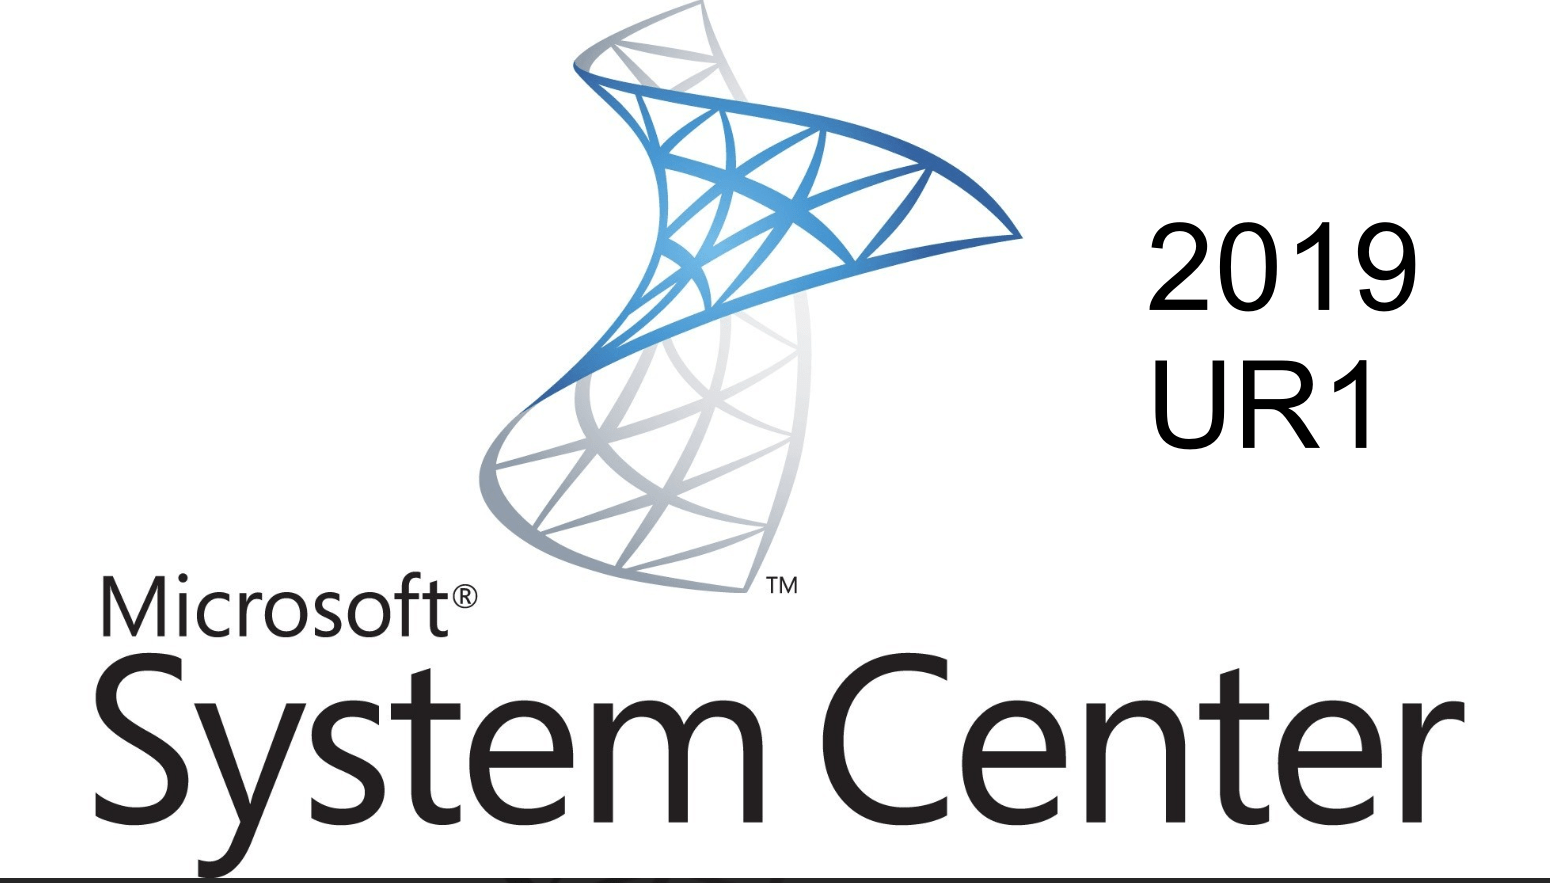 Microsoft System Center 2019 Update Rollup 1